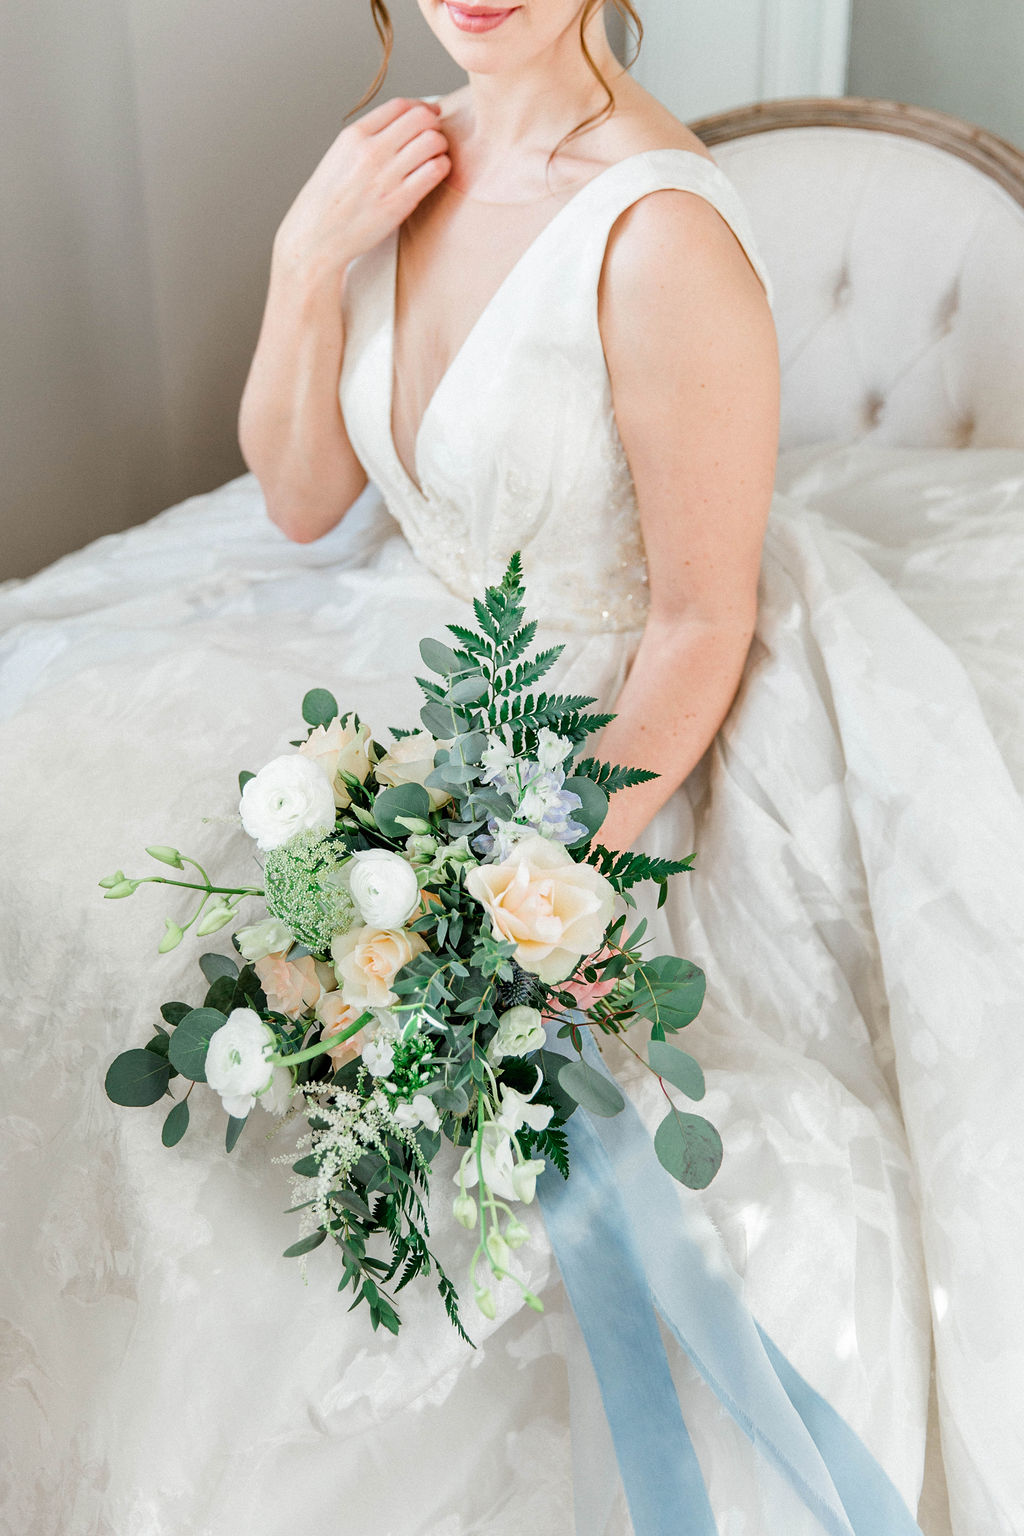 photo of the bridal bouquet